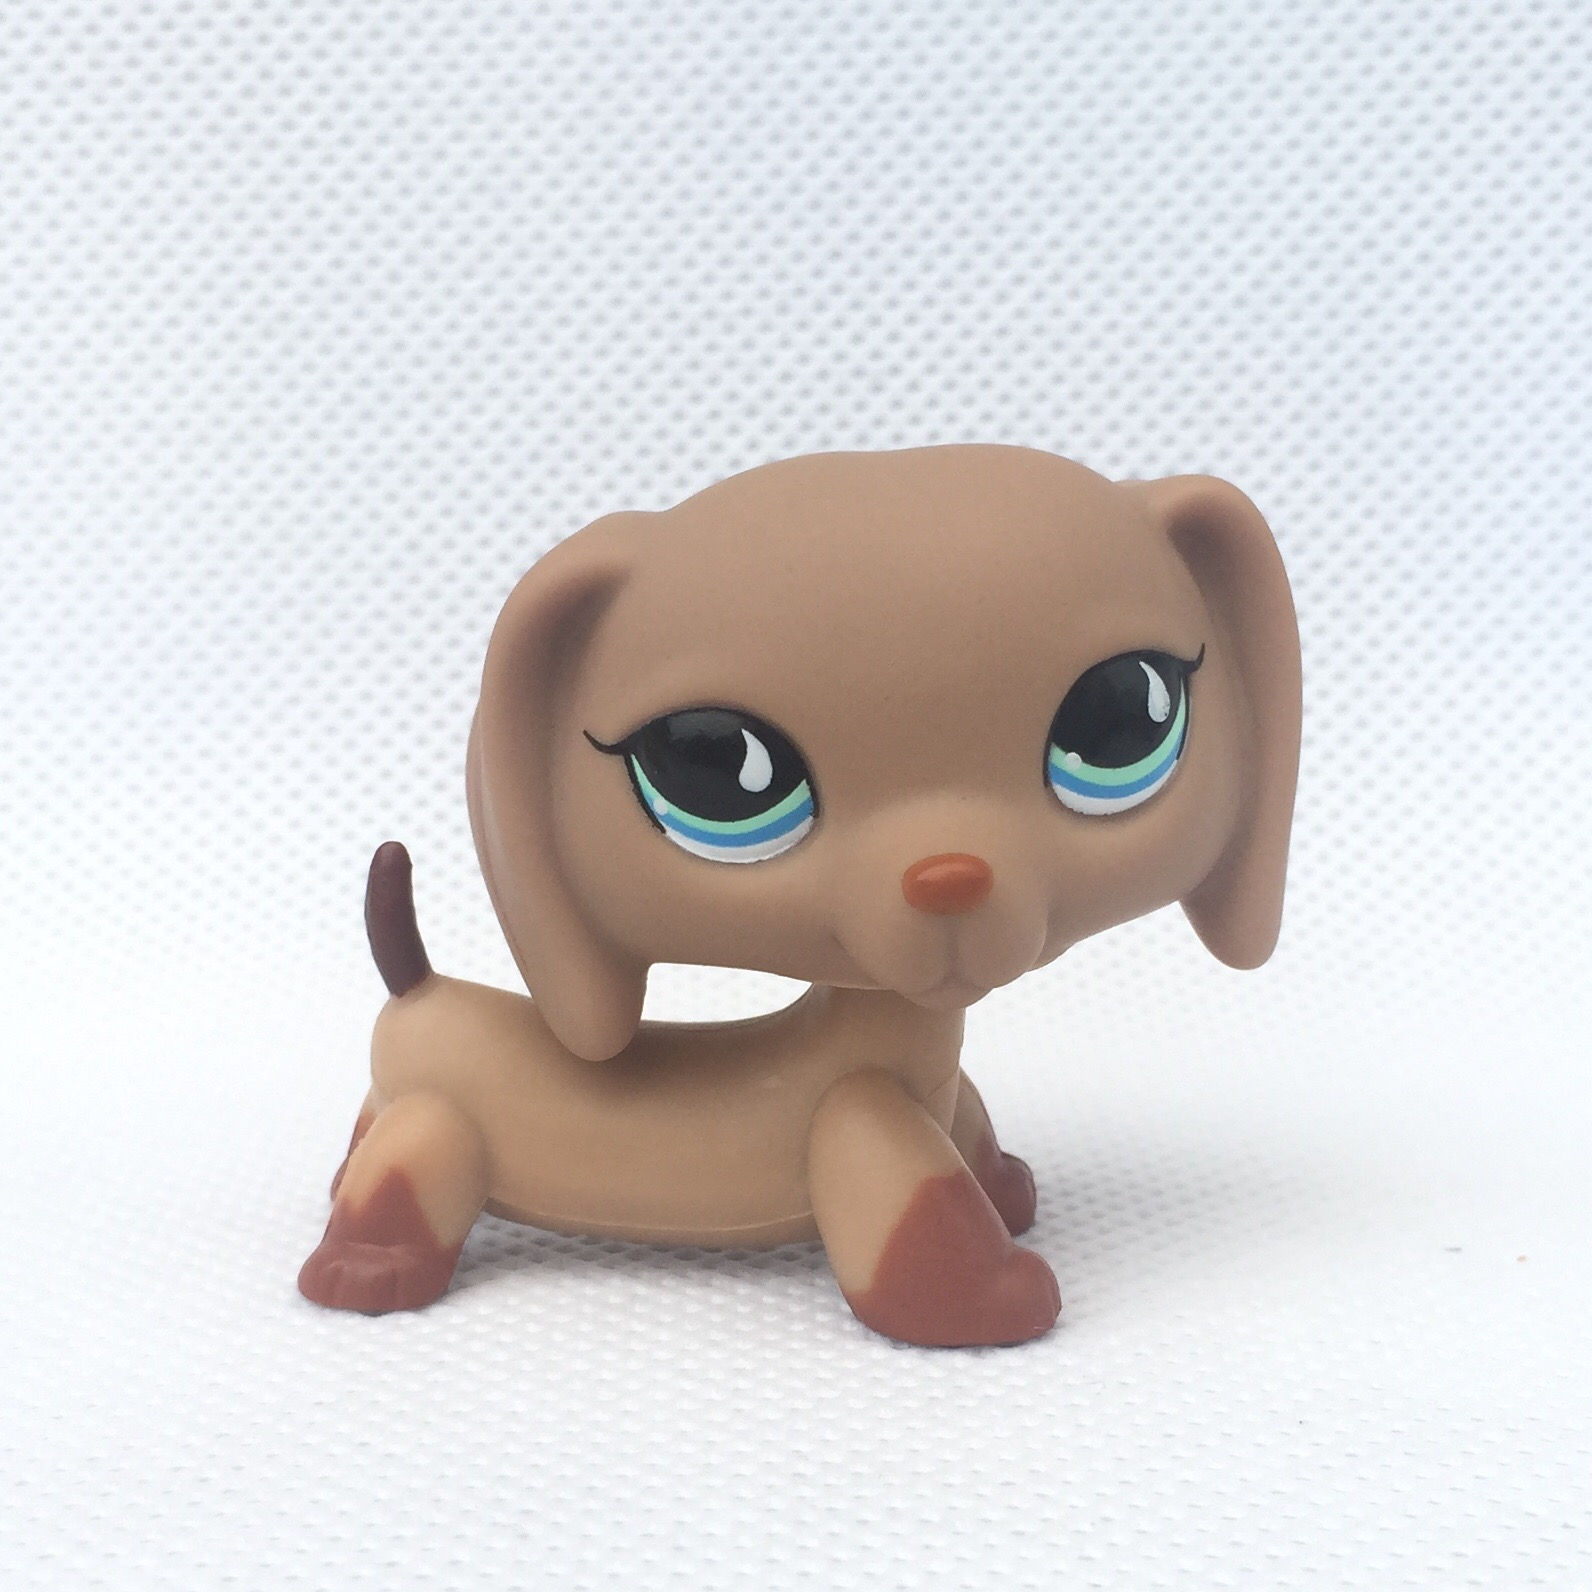 pet toys Collection figure Gift Dachshund Wiener Dog Teardrop blue Eyes 2 #518 lovely pet collection lps figure toy black yellow short hair siamese cat blue eyes nice gift kids